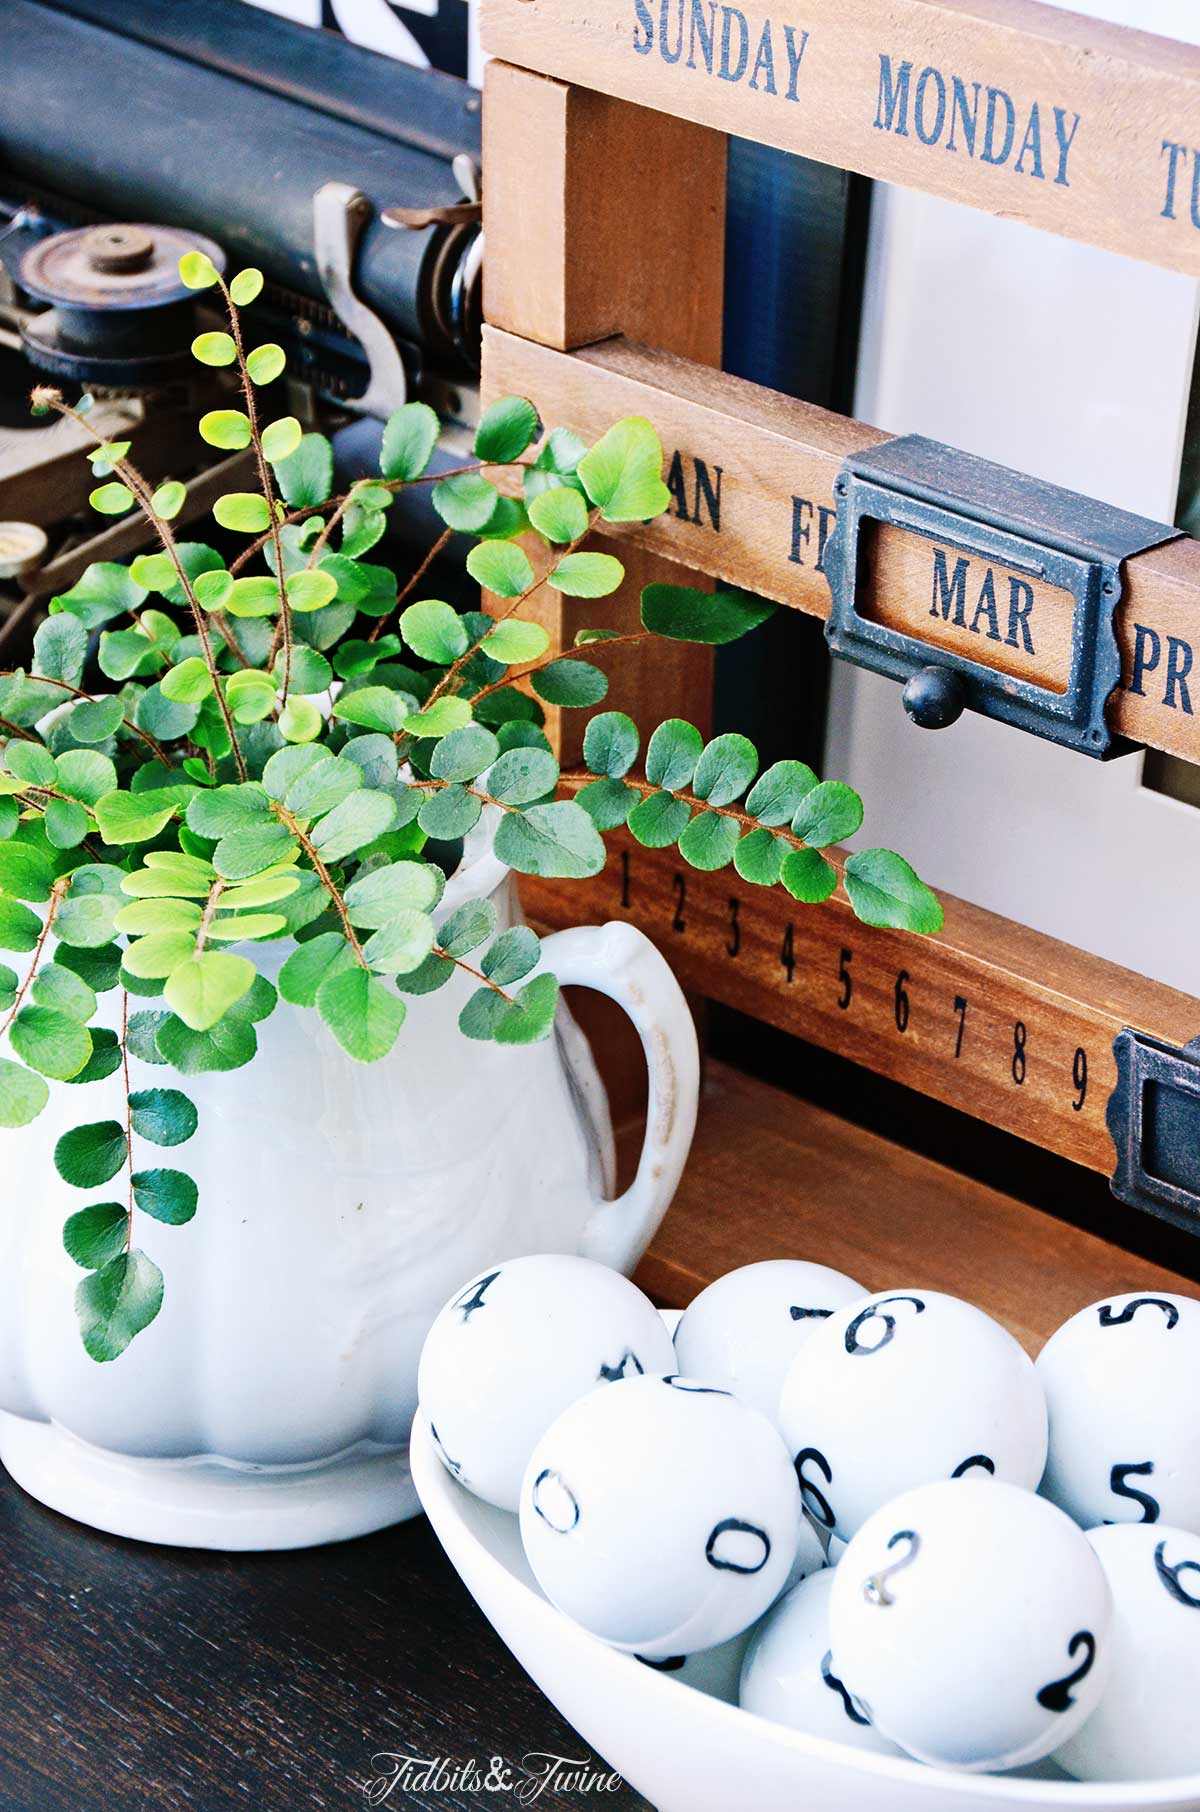 A wooden desk calendar next to antique white ironstone holding a button fern and glass numbered balls